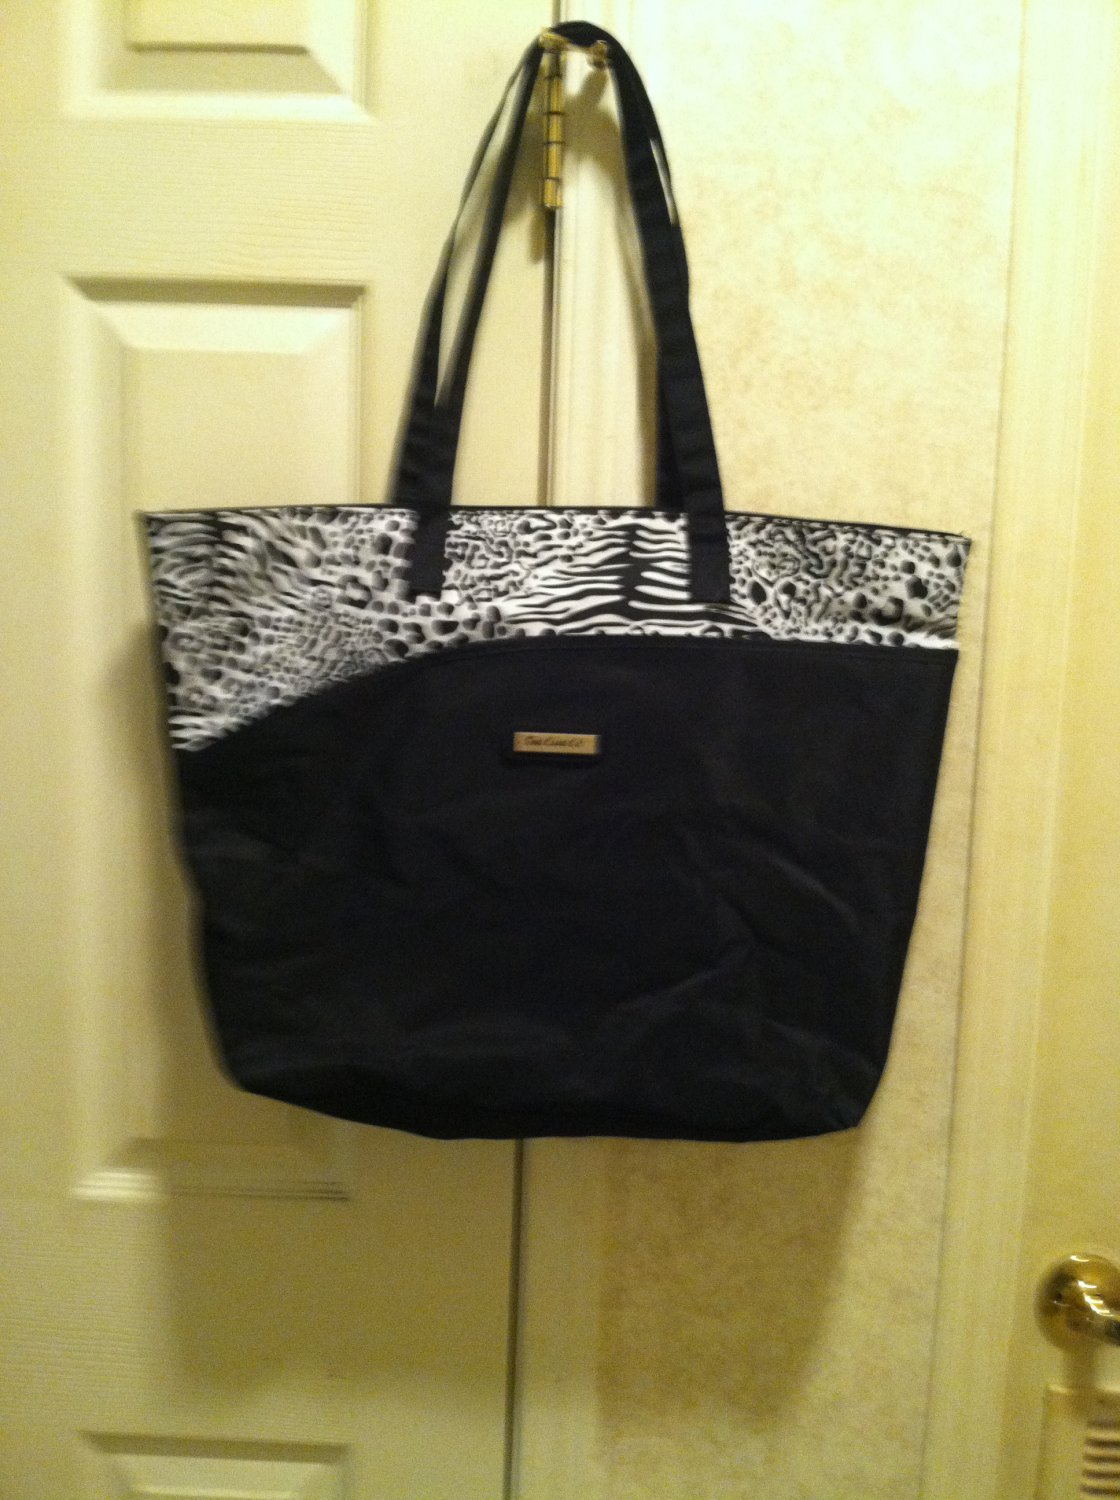 East Coast Company Tote Bag